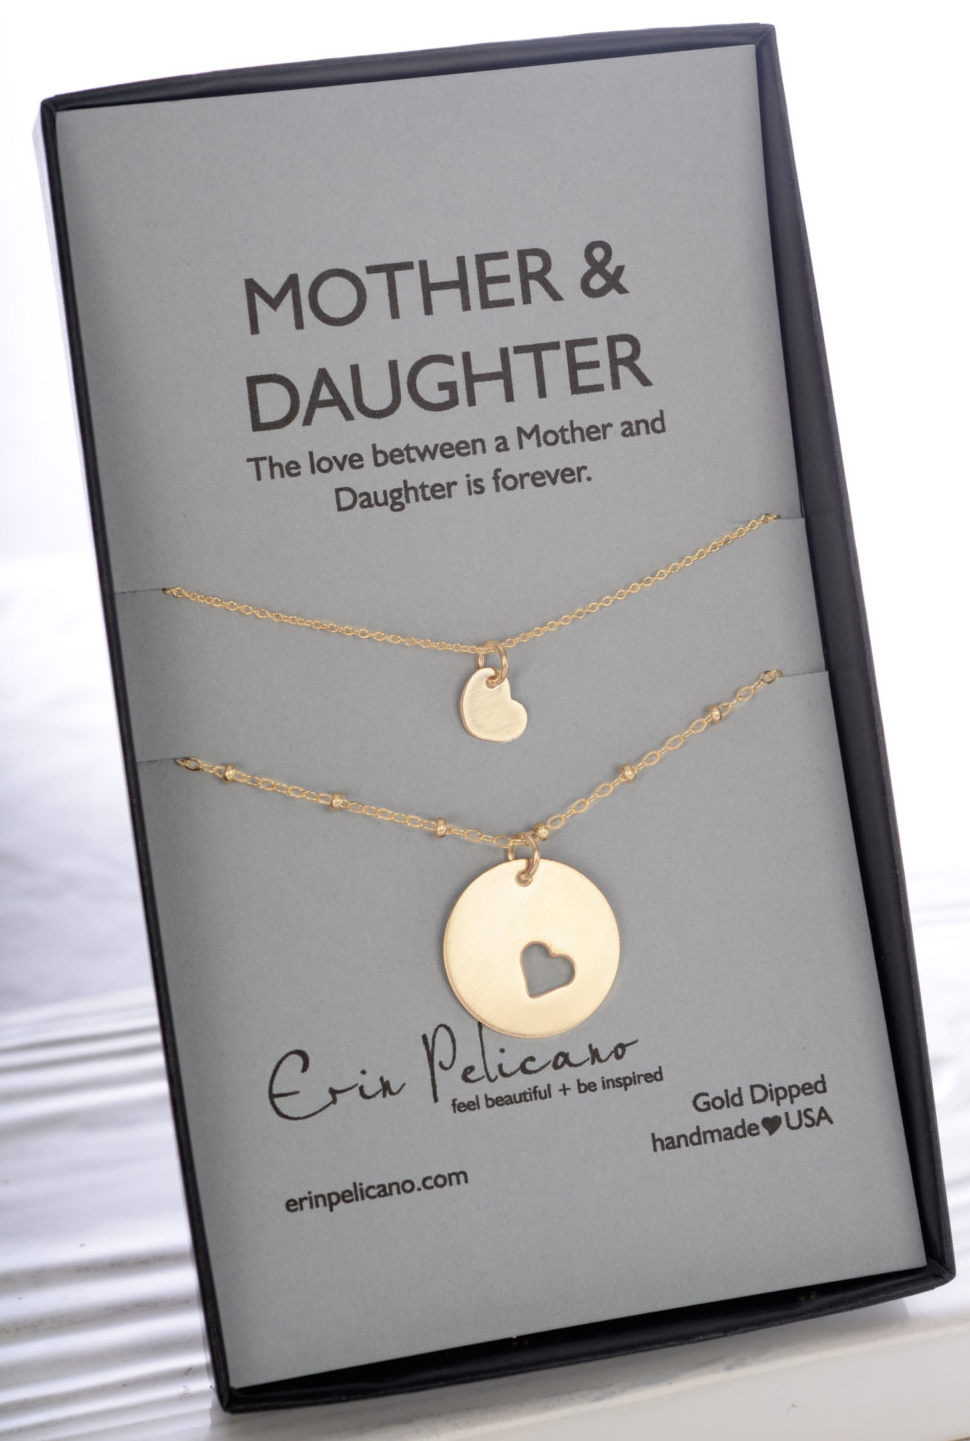 Thoughtful gifts for loved ones - Ceremonies by Camille